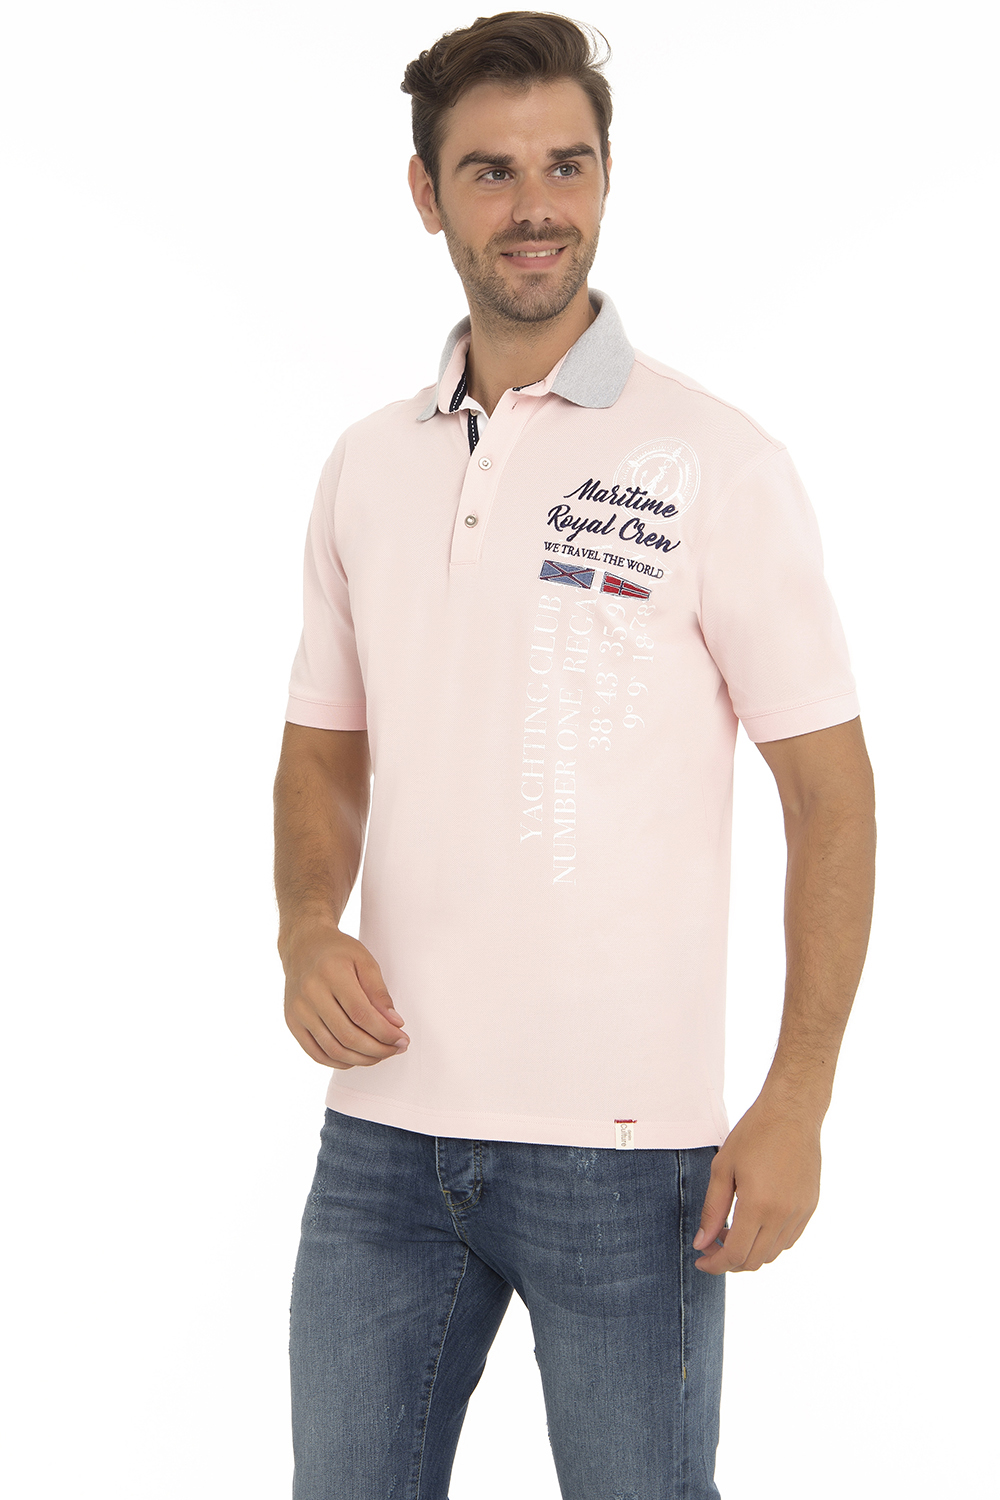 Men's Poloshirt Pique Pink Cotton